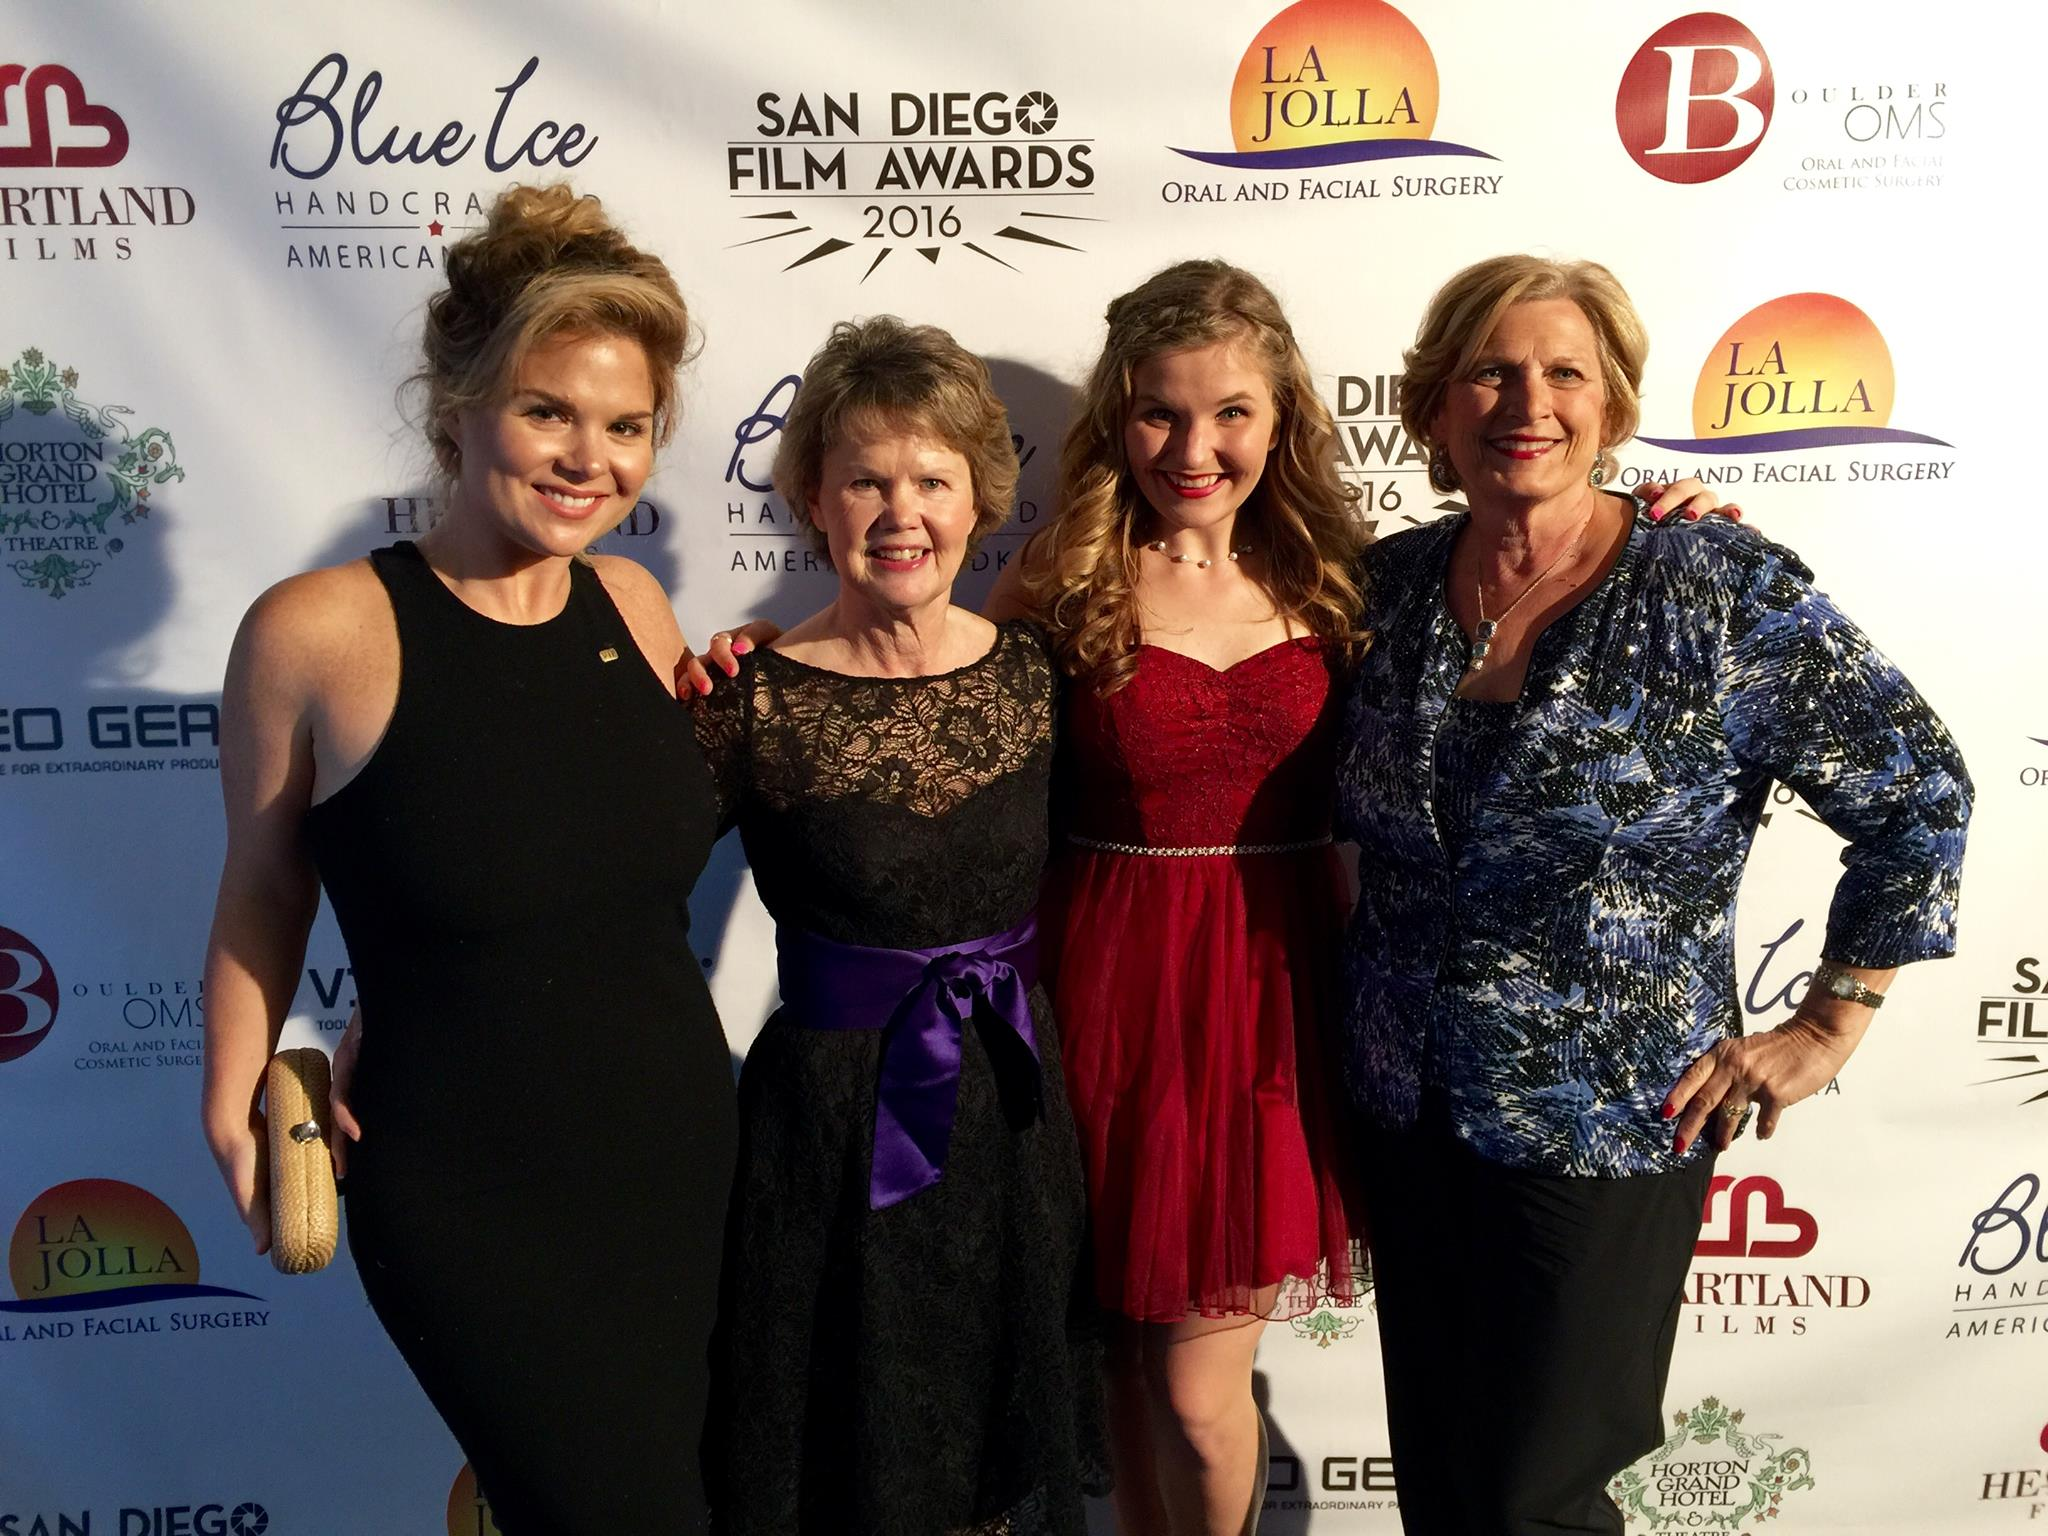 San Diego Film Awards